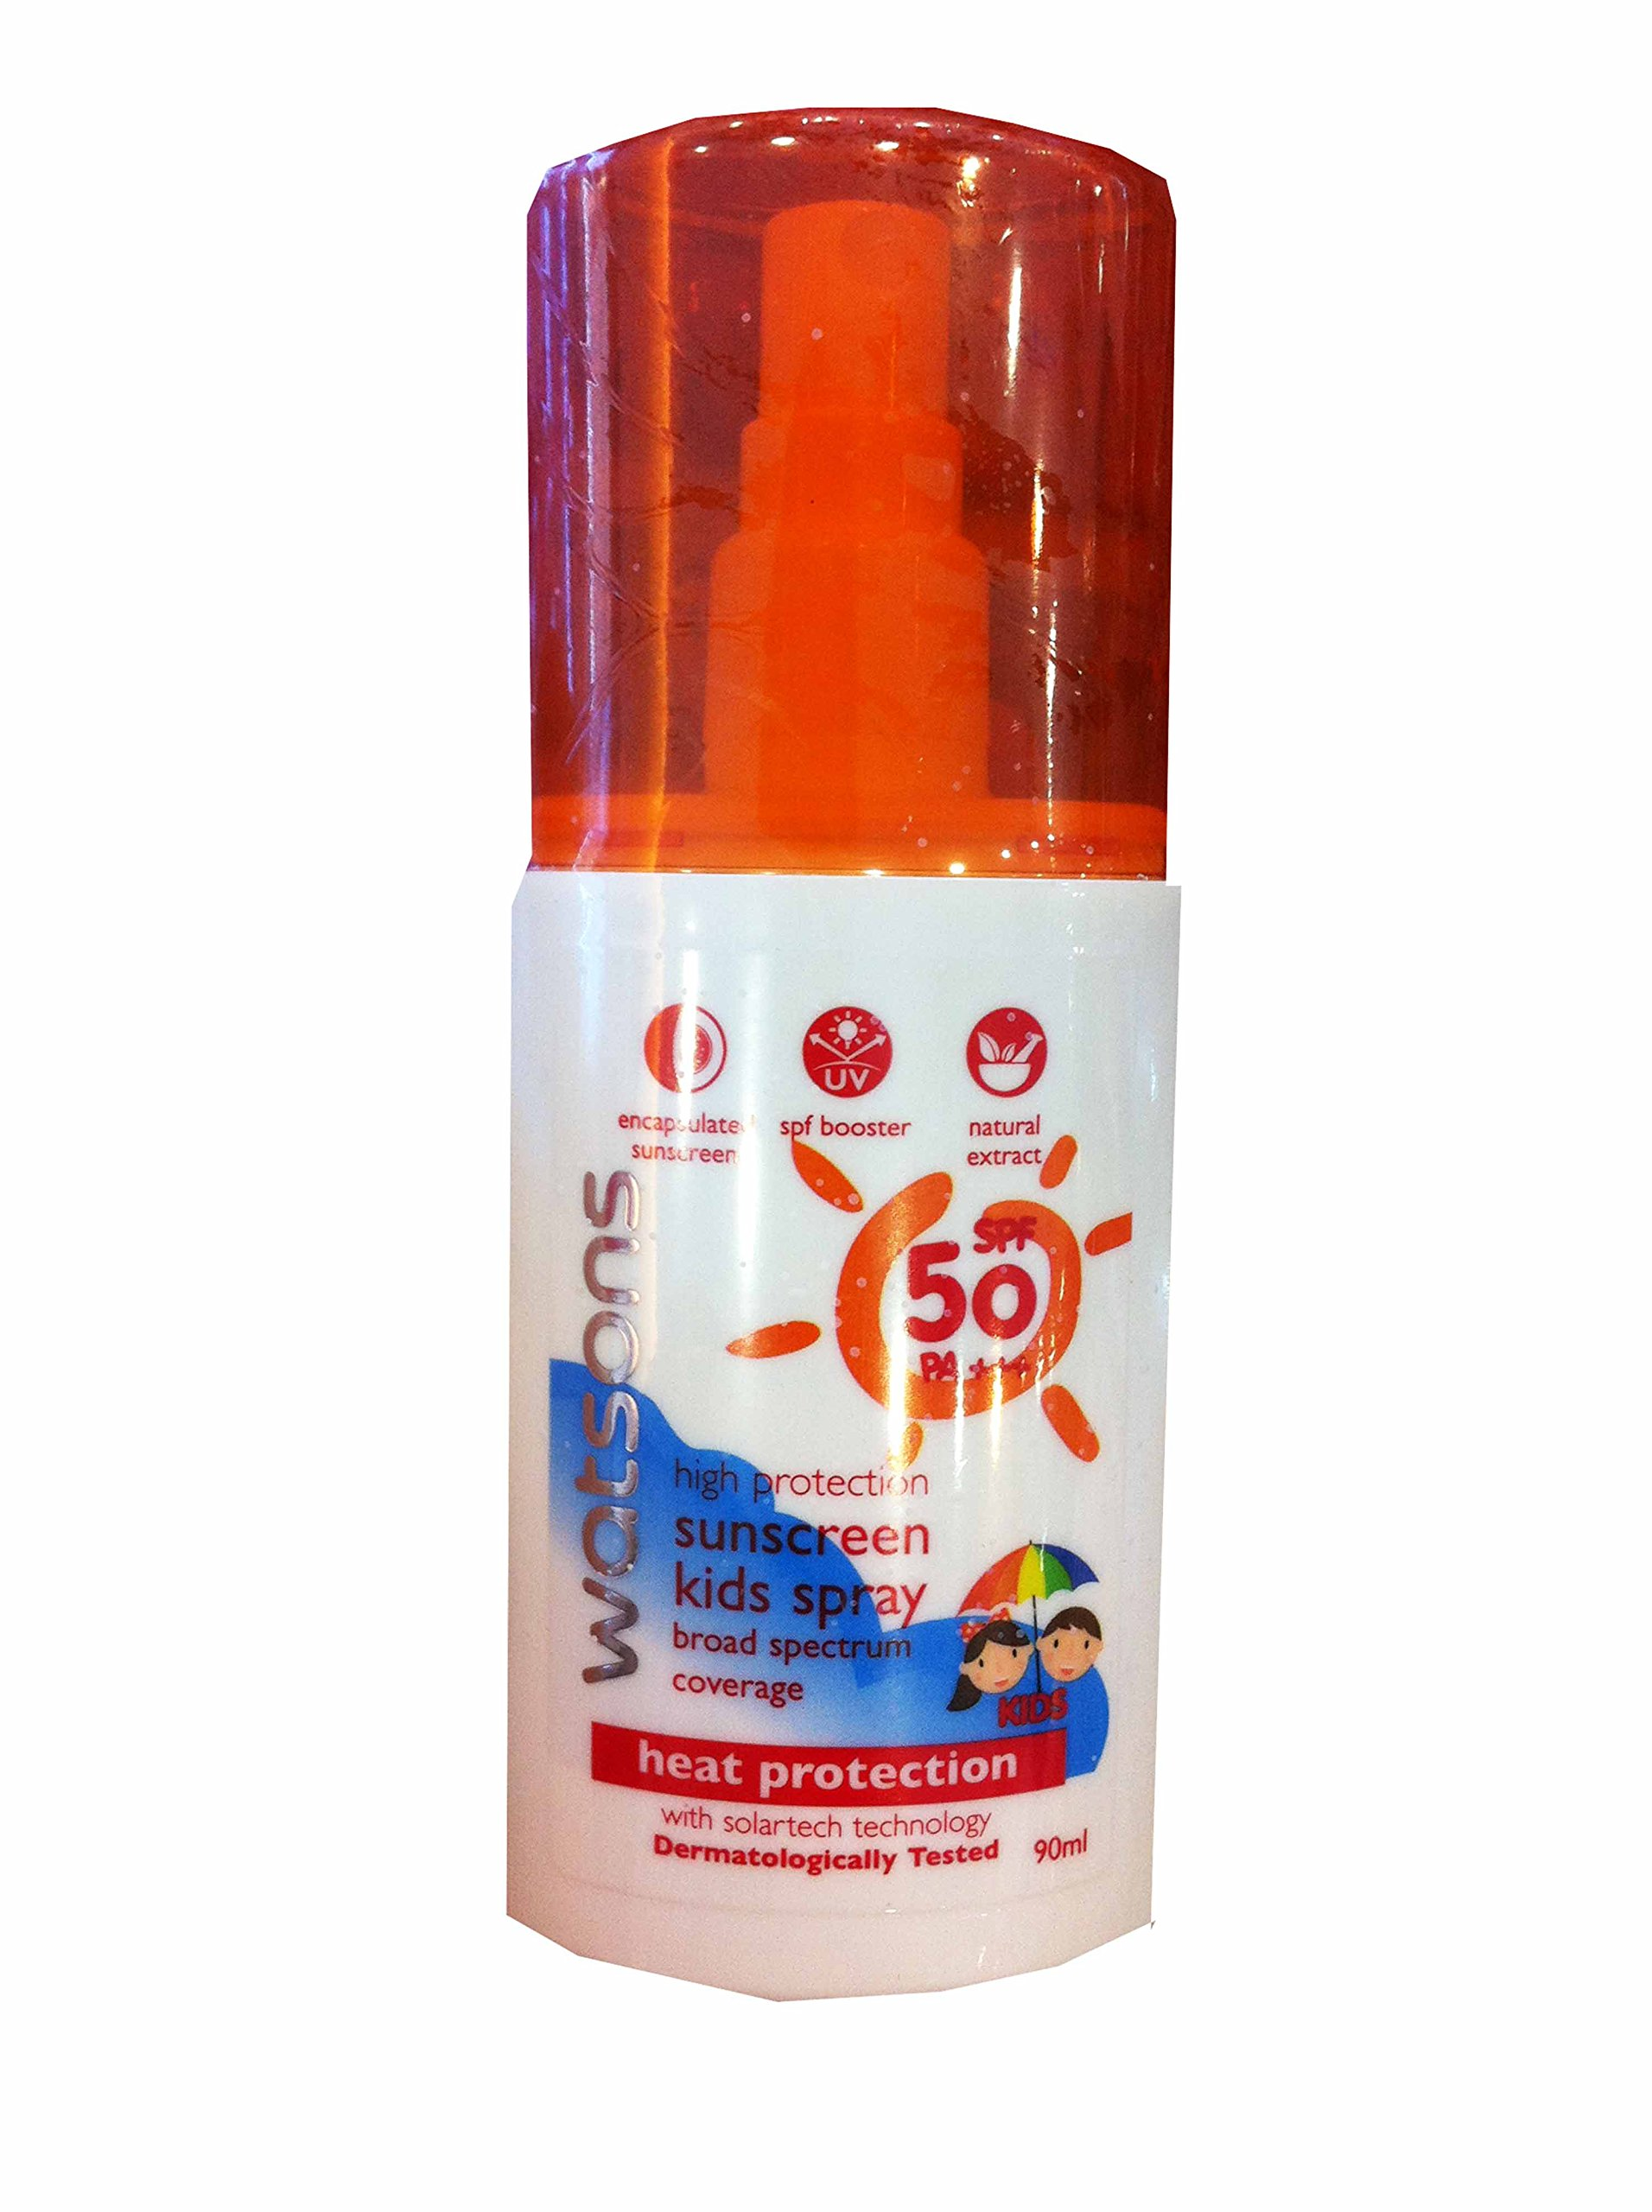 2 Packs of High Protection Sunscreen Kids Spray Broad Spectrum Coverage By Watsons. Spf 50 Pa+++, Dermatologically Tested. (90 Ml/ Pack)